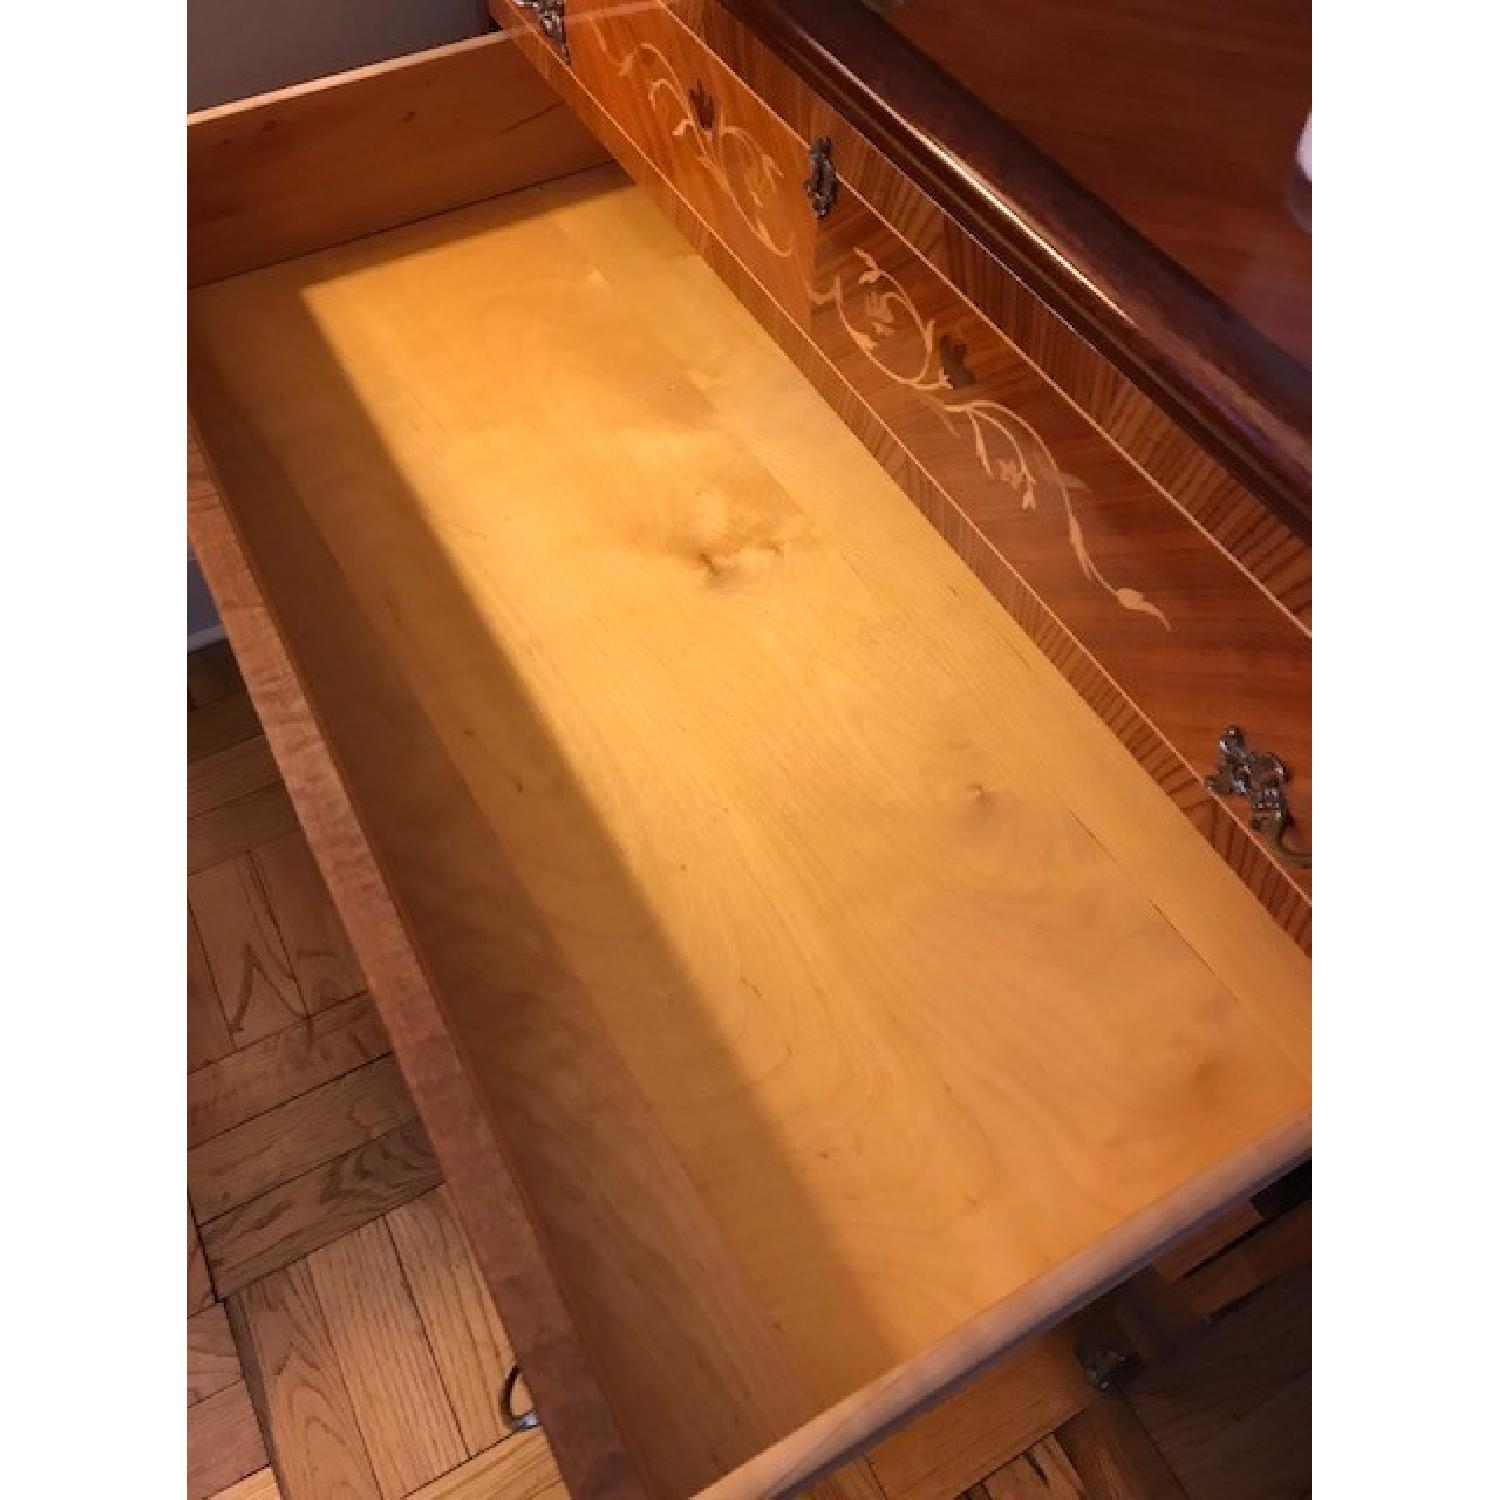 Vintage Roll Top Writing Desk w/ Drawers-3